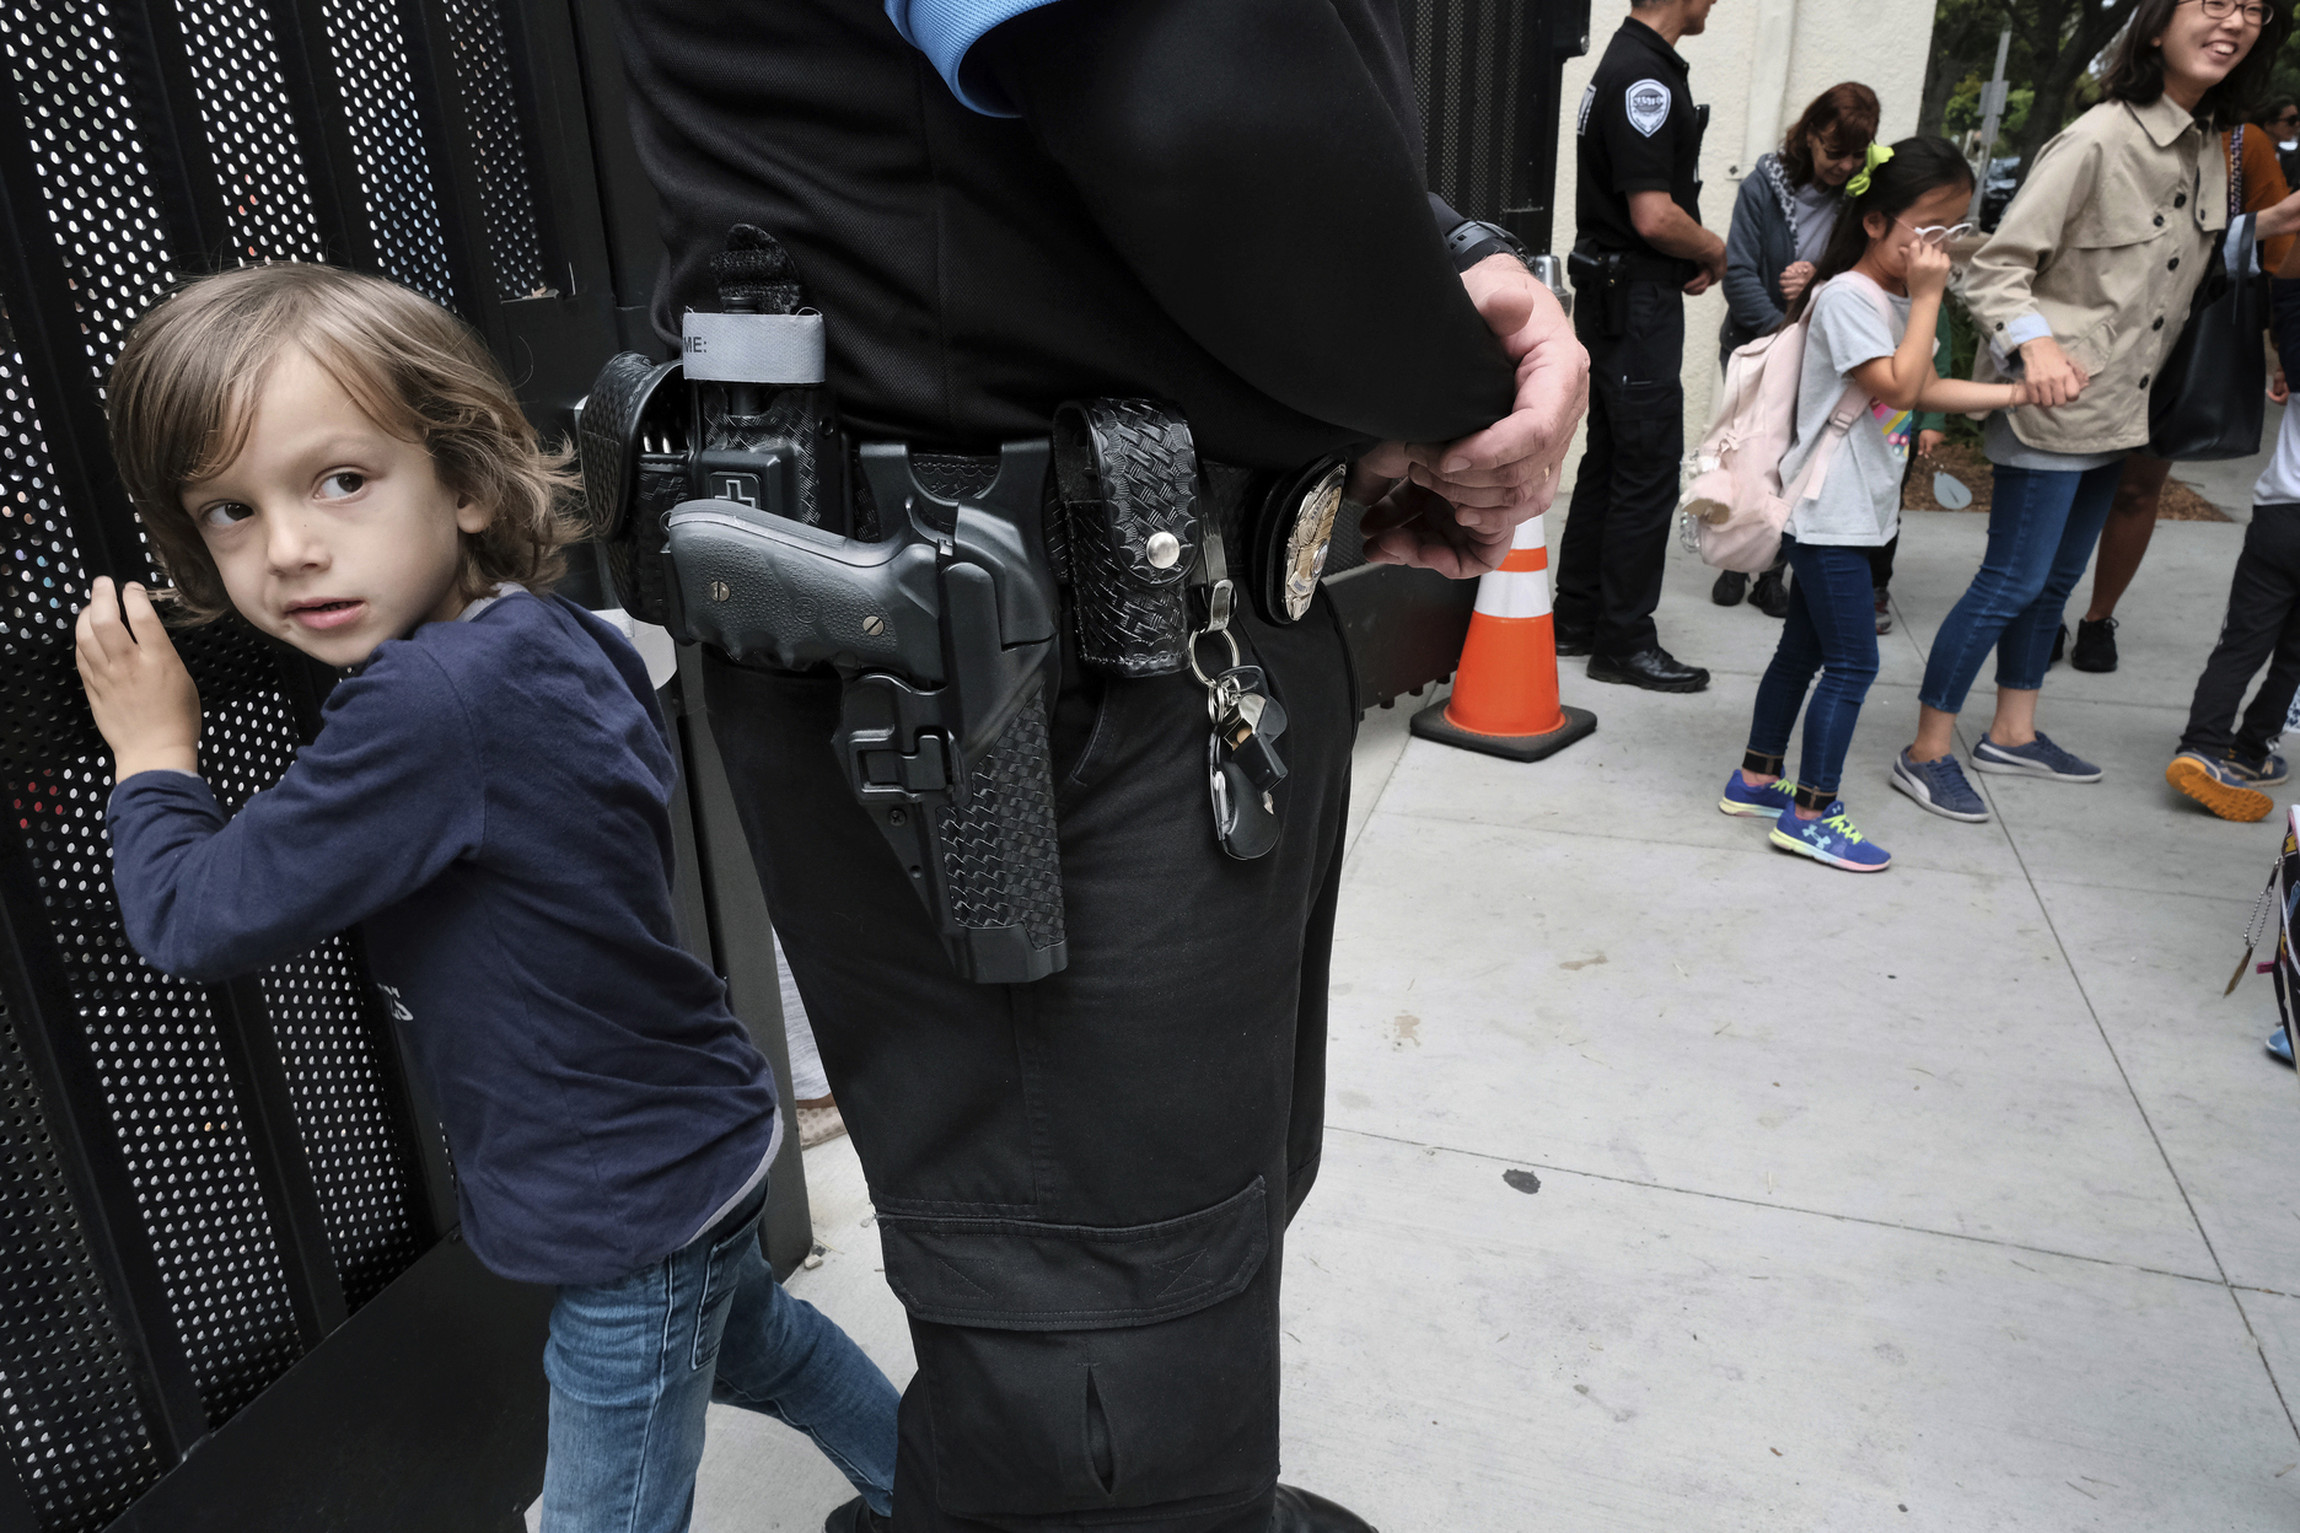 Is Armed Security the Solution to Mass Shootings?